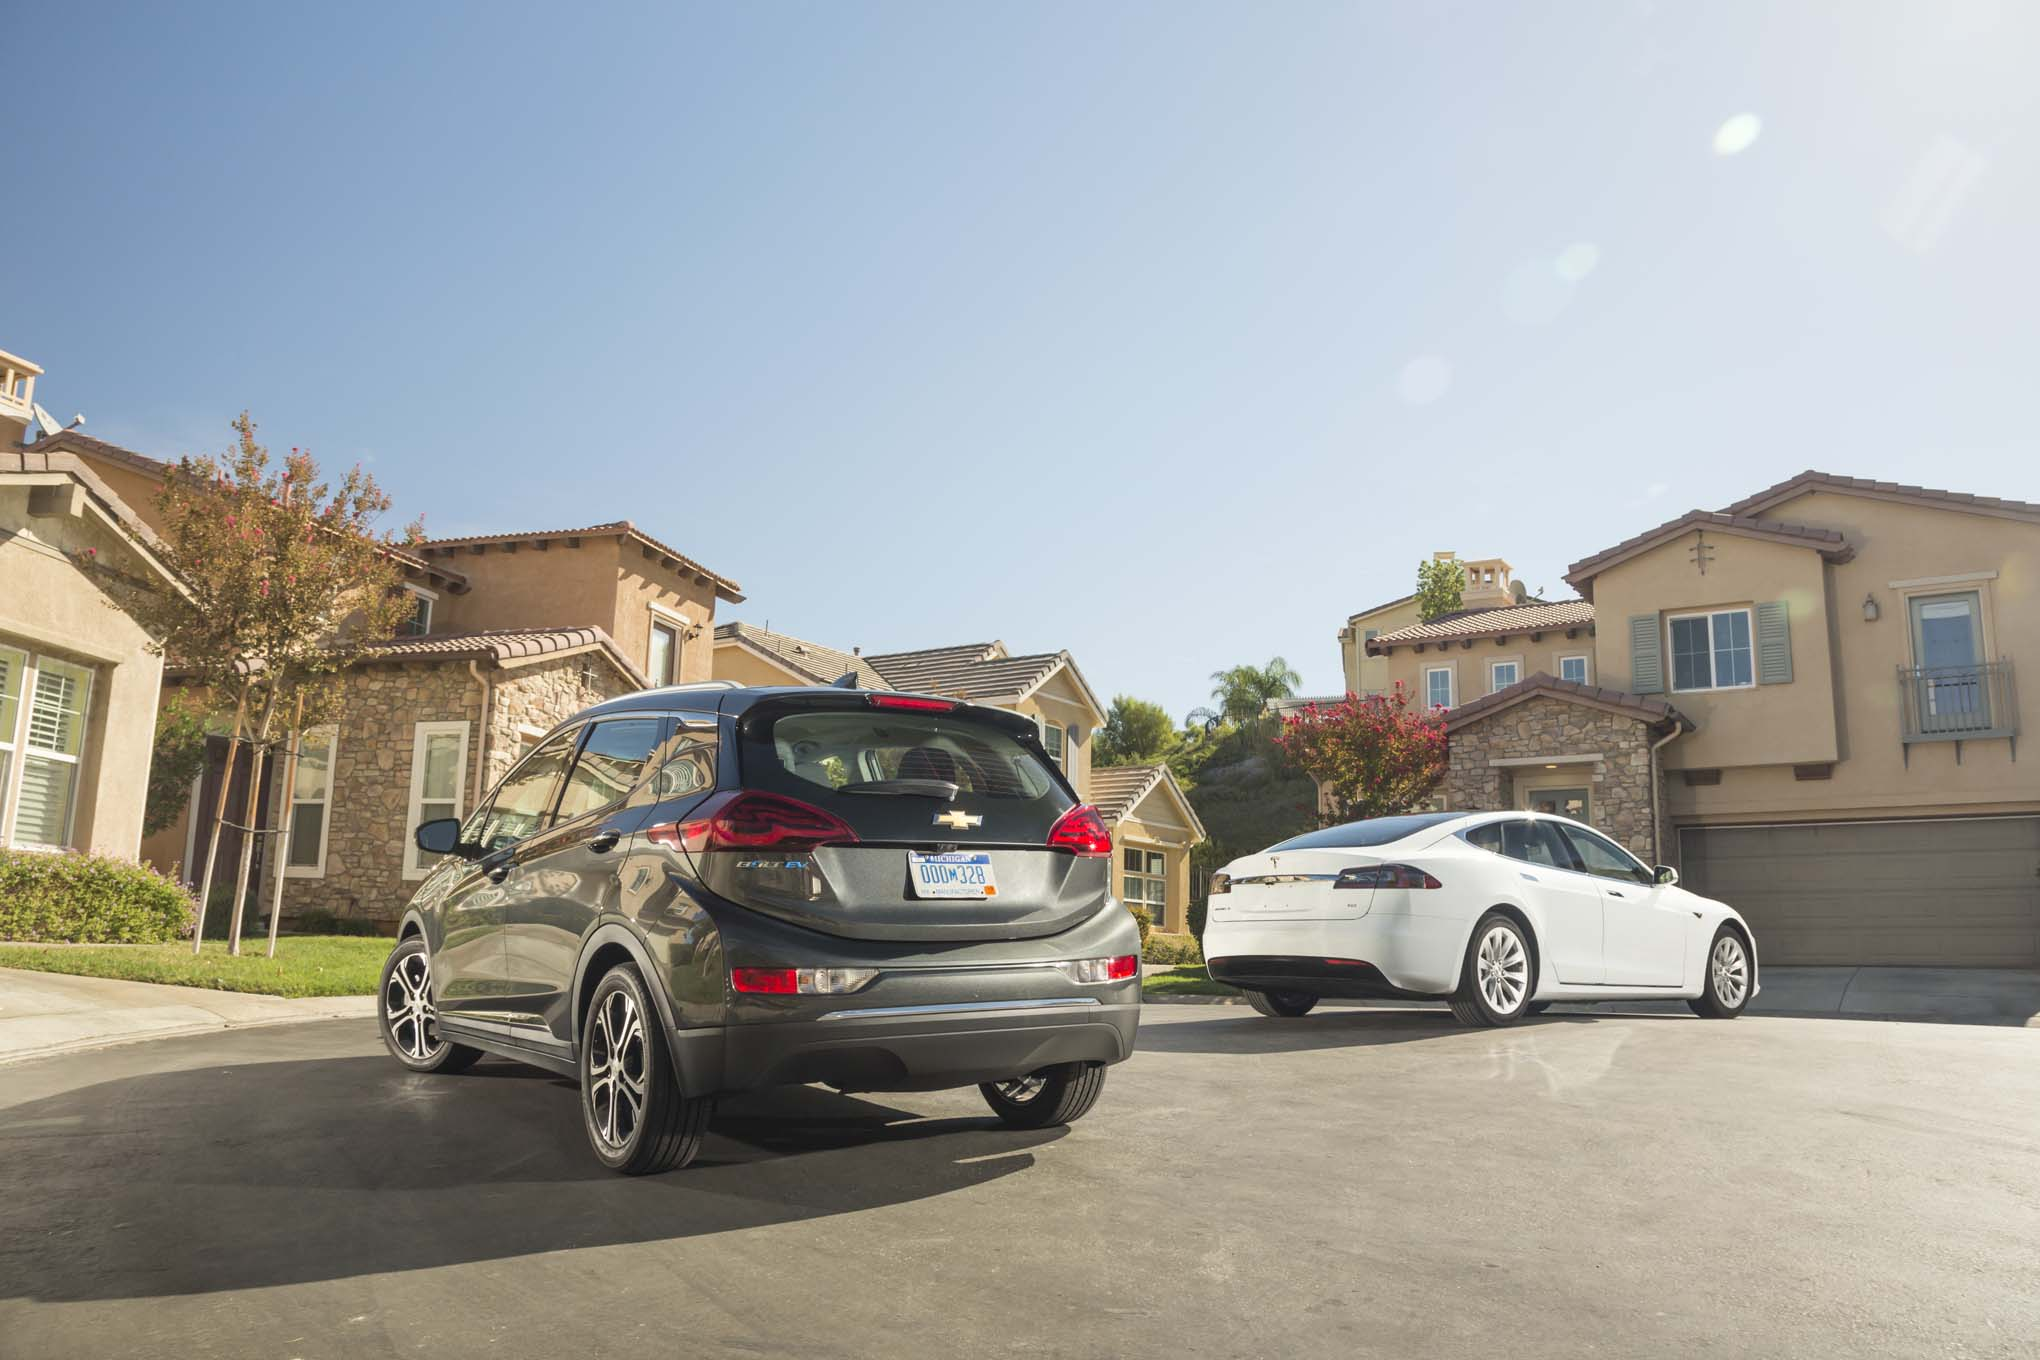 2017 Chevrolet Bolt EV Premier vs 2016 Tesla Model S 60 rear three quarters